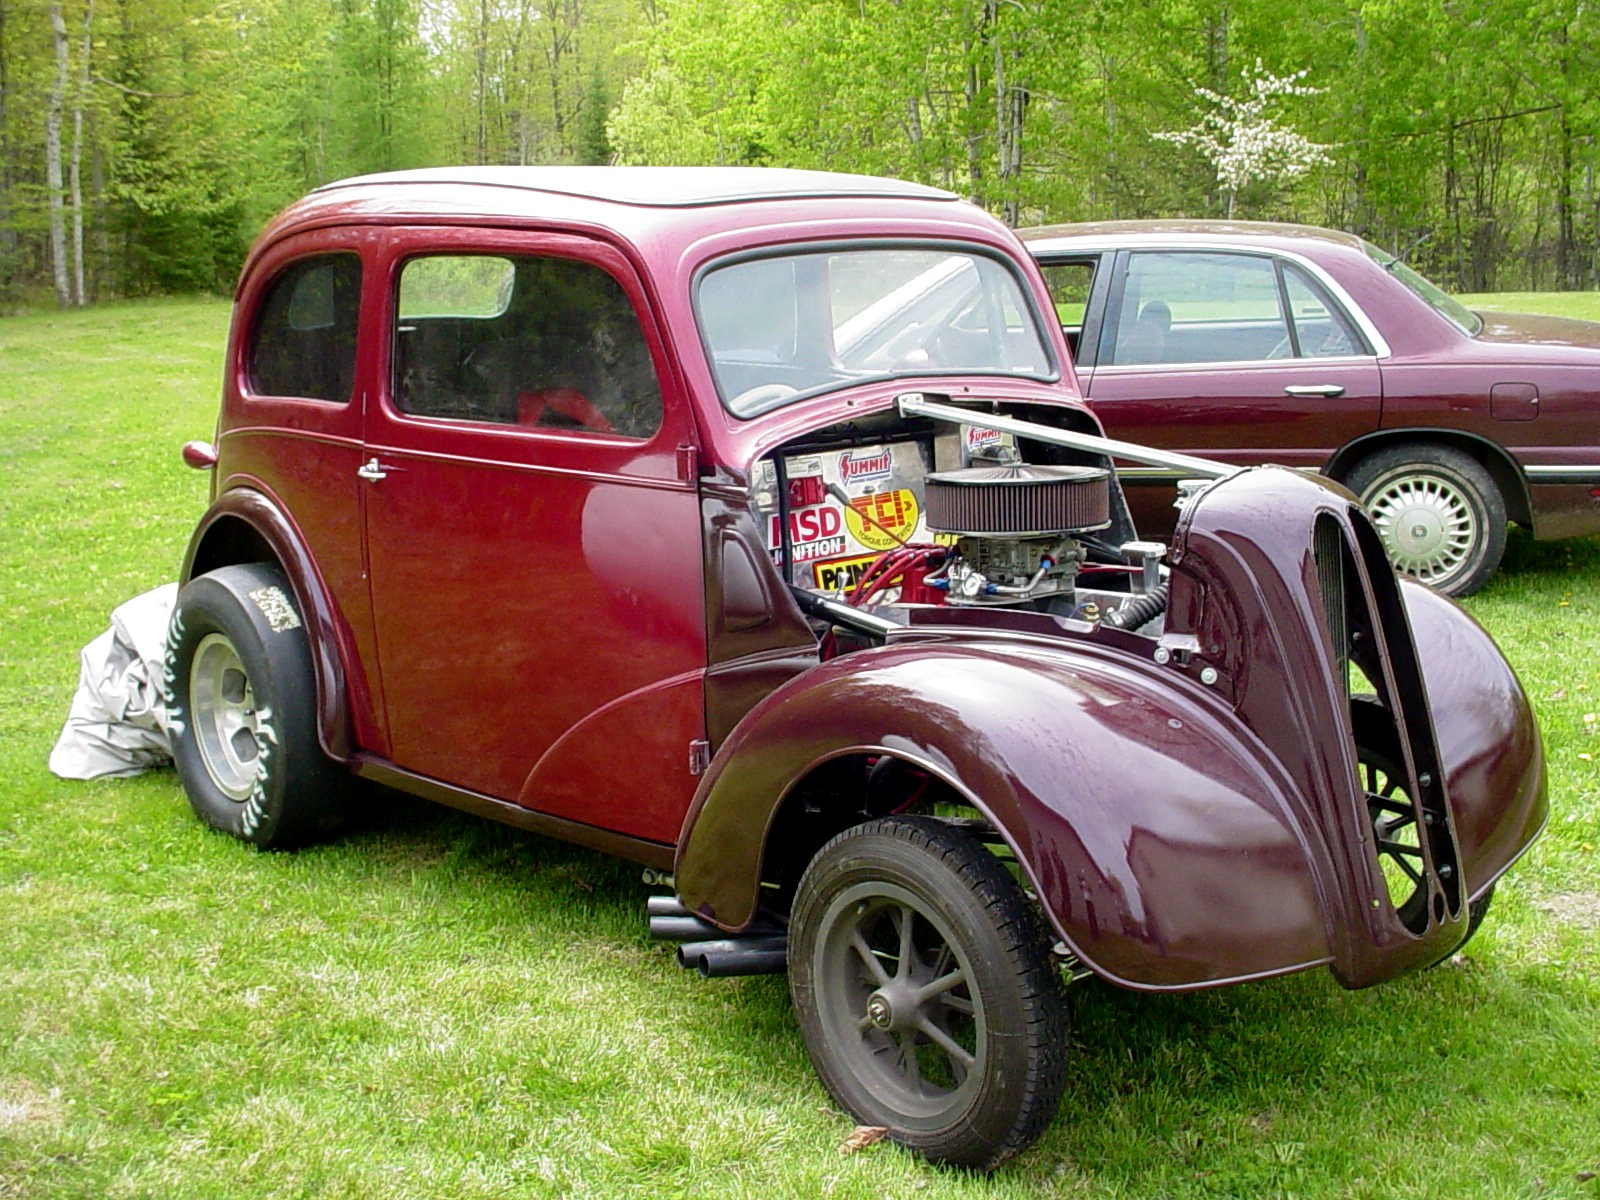 48 Anglia Old School Gasser (turnkey) | The H.A.M.B.